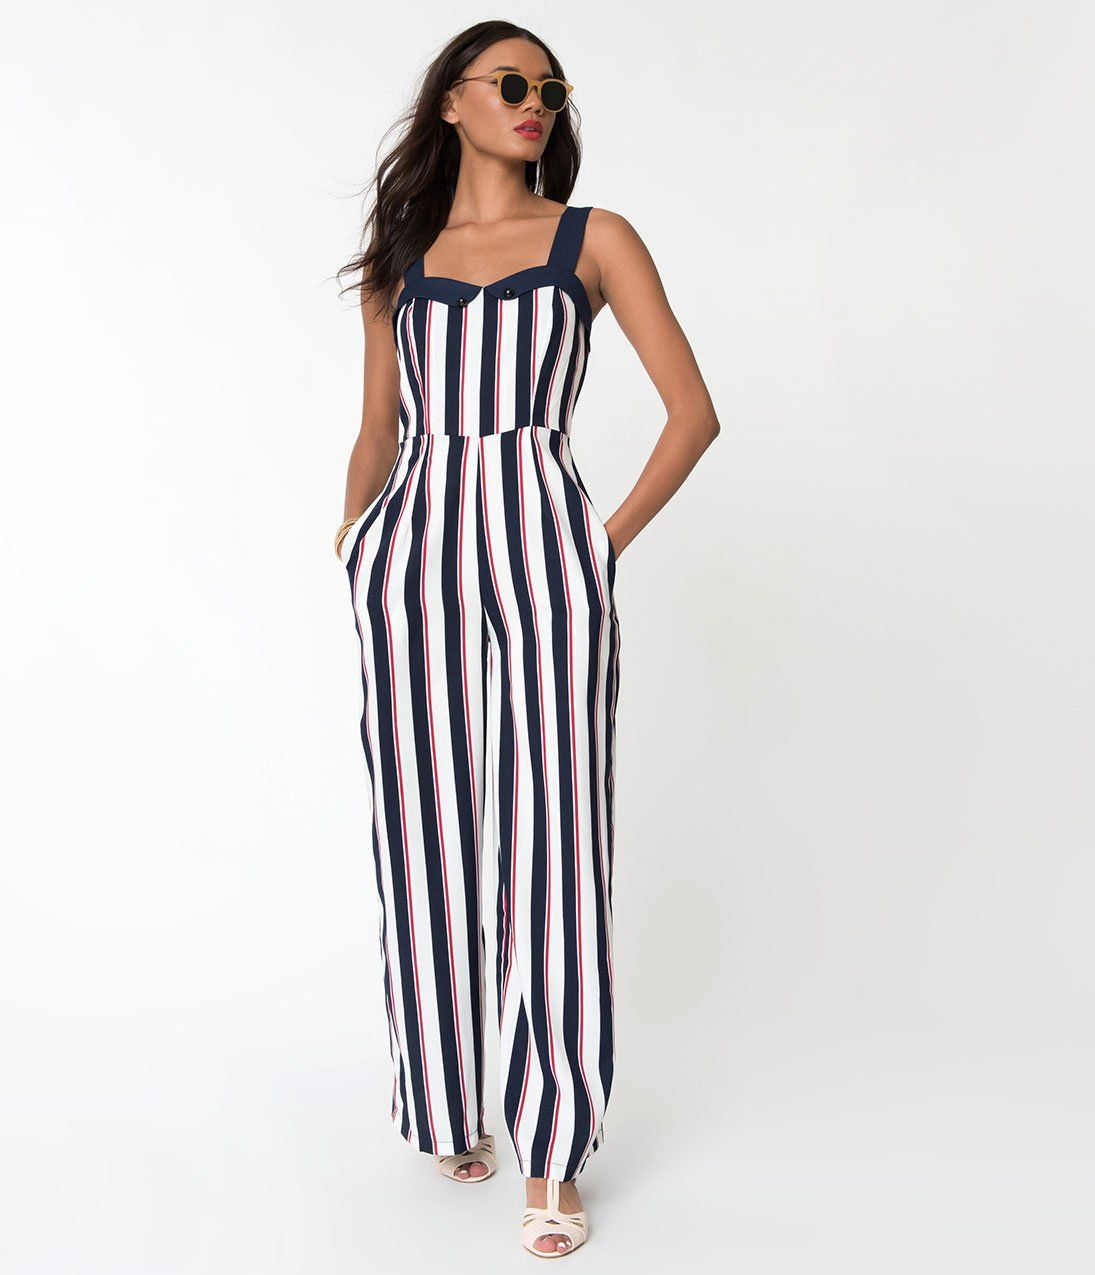 acda4a20d0d2 1930s Wide Leg Pants and Beach Pajamas Banned Red White Blue Striped Set  Sail Sleeveless Crepe Jumpsuit  78.00 AT vintagedancer.com